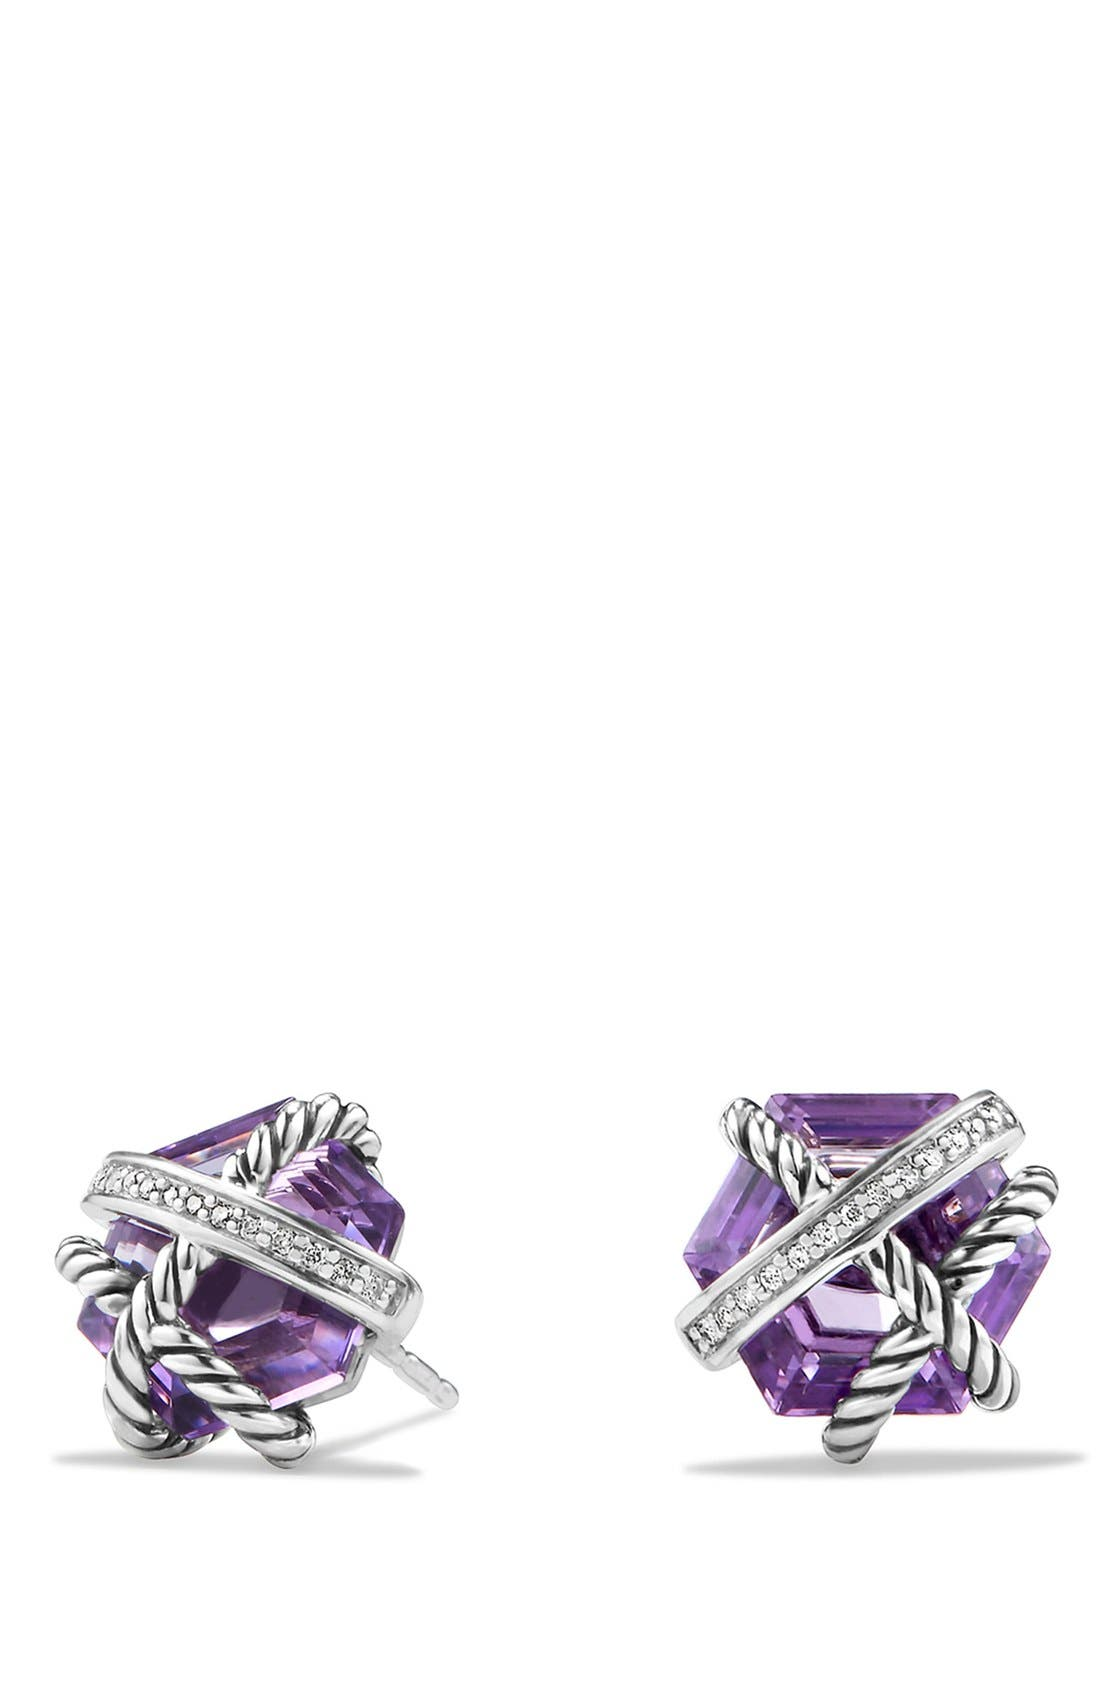 'Cable Wrap' Earrings with Semiprecious Stones & Diamonds,                             Main thumbnail 1, color,                             AMETHYST